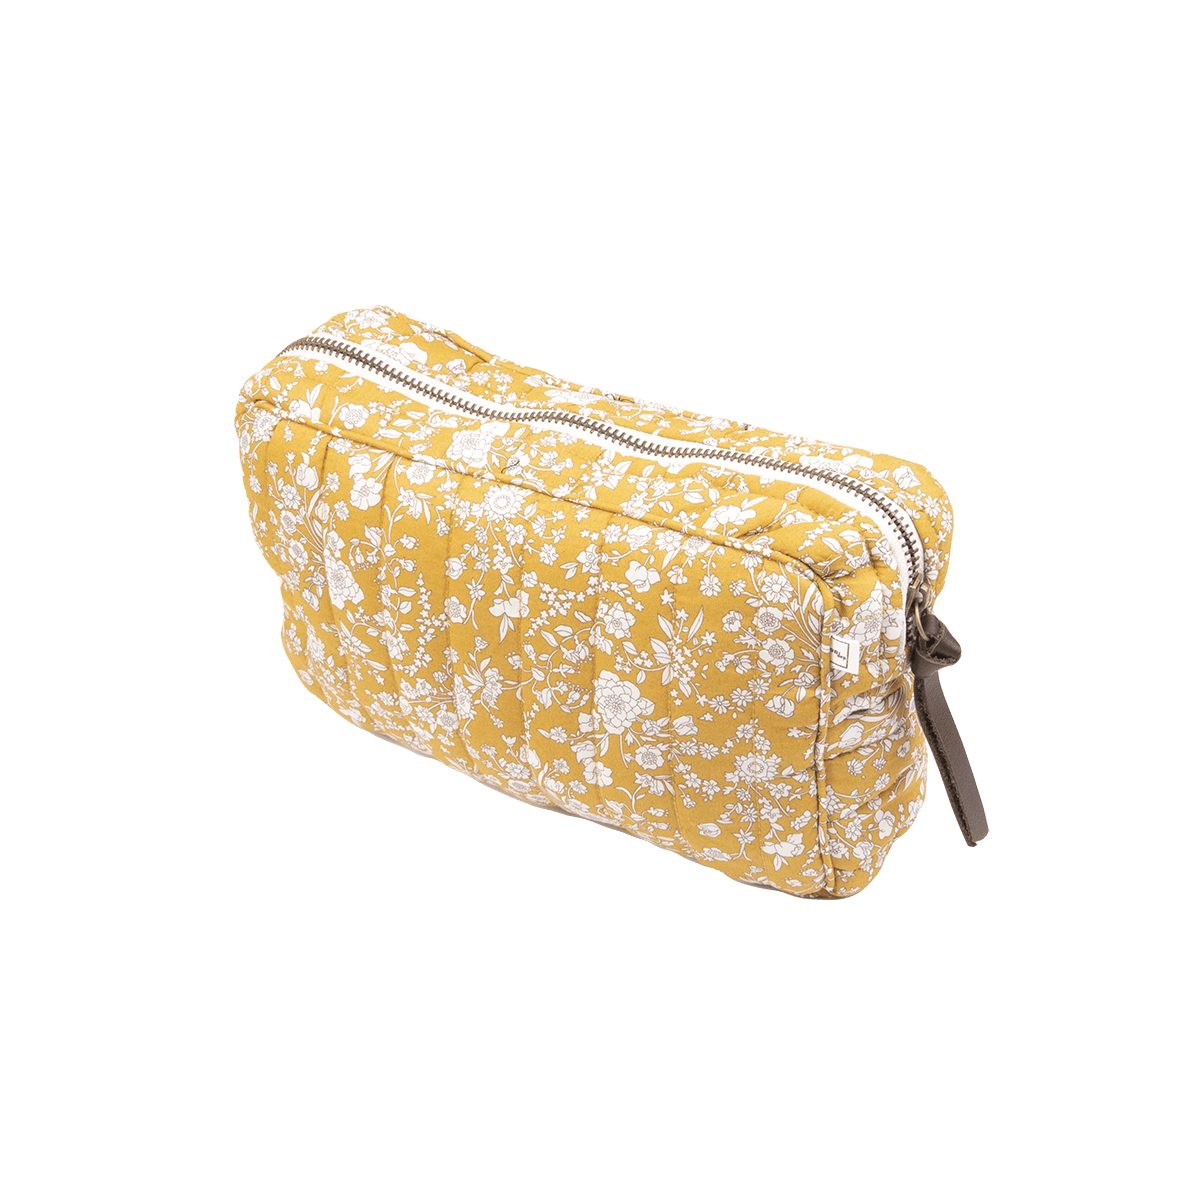 BON DEP - Liberty pouch SMALL Summer Blooms